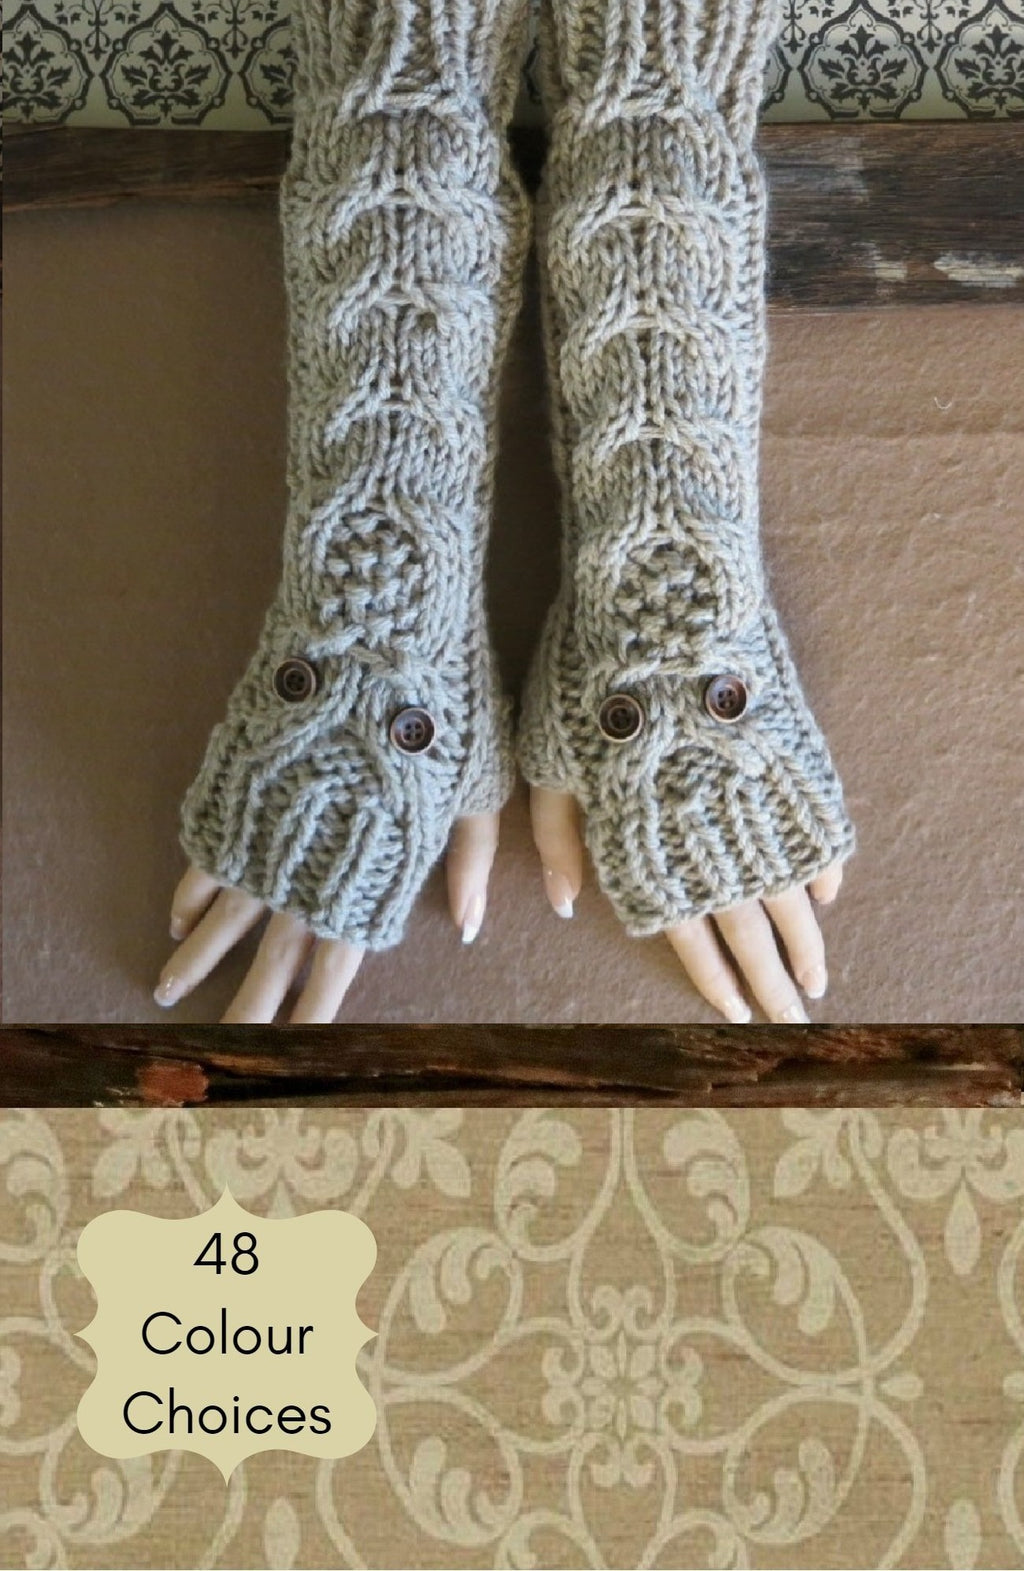 Owl-Fingerless-Gloves-Nchanted-Gifts